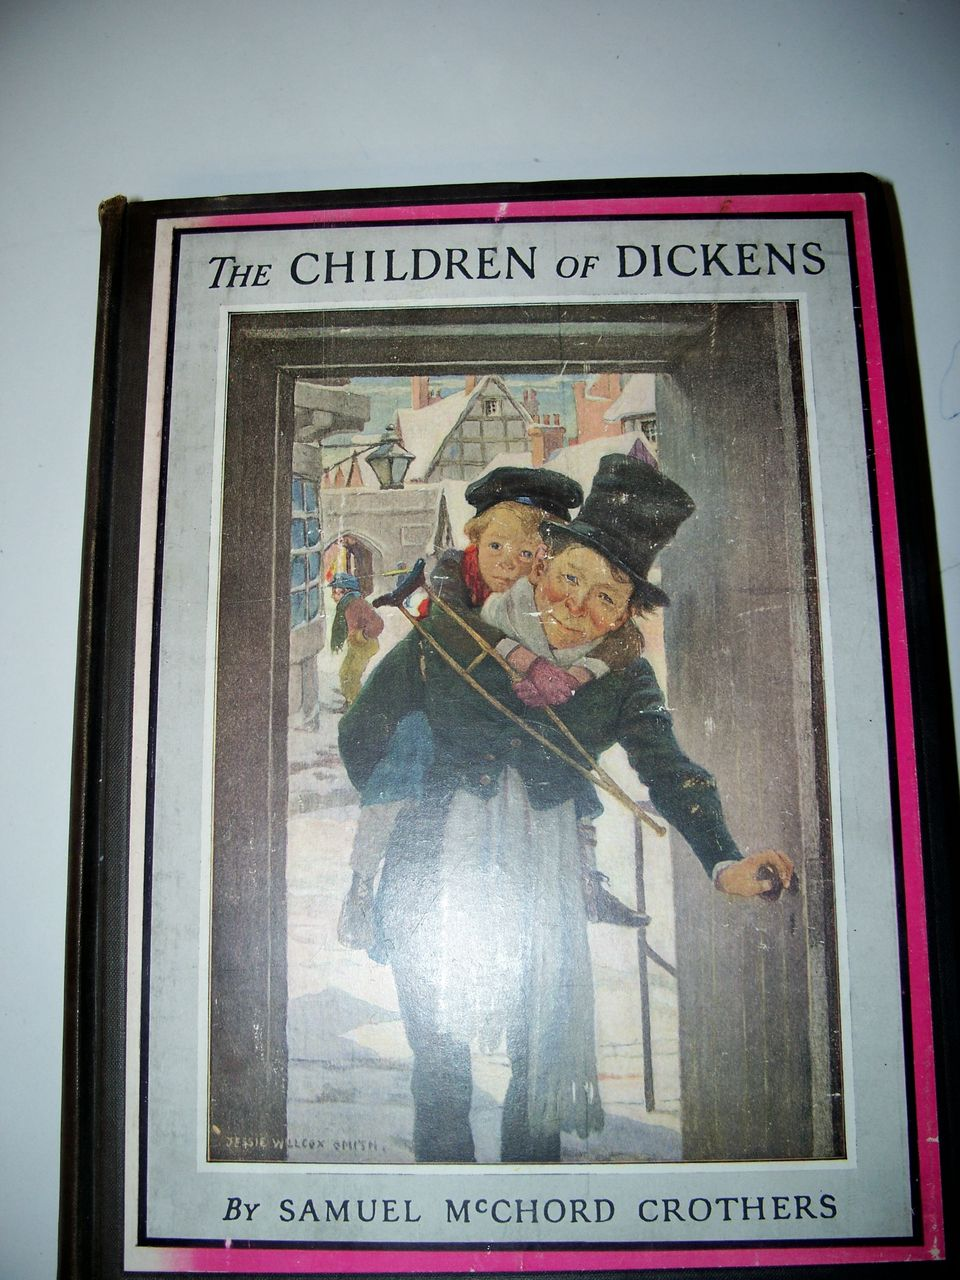 The Children of Dickens/Illustrated Jessie Willcox Smith 1937 Edition